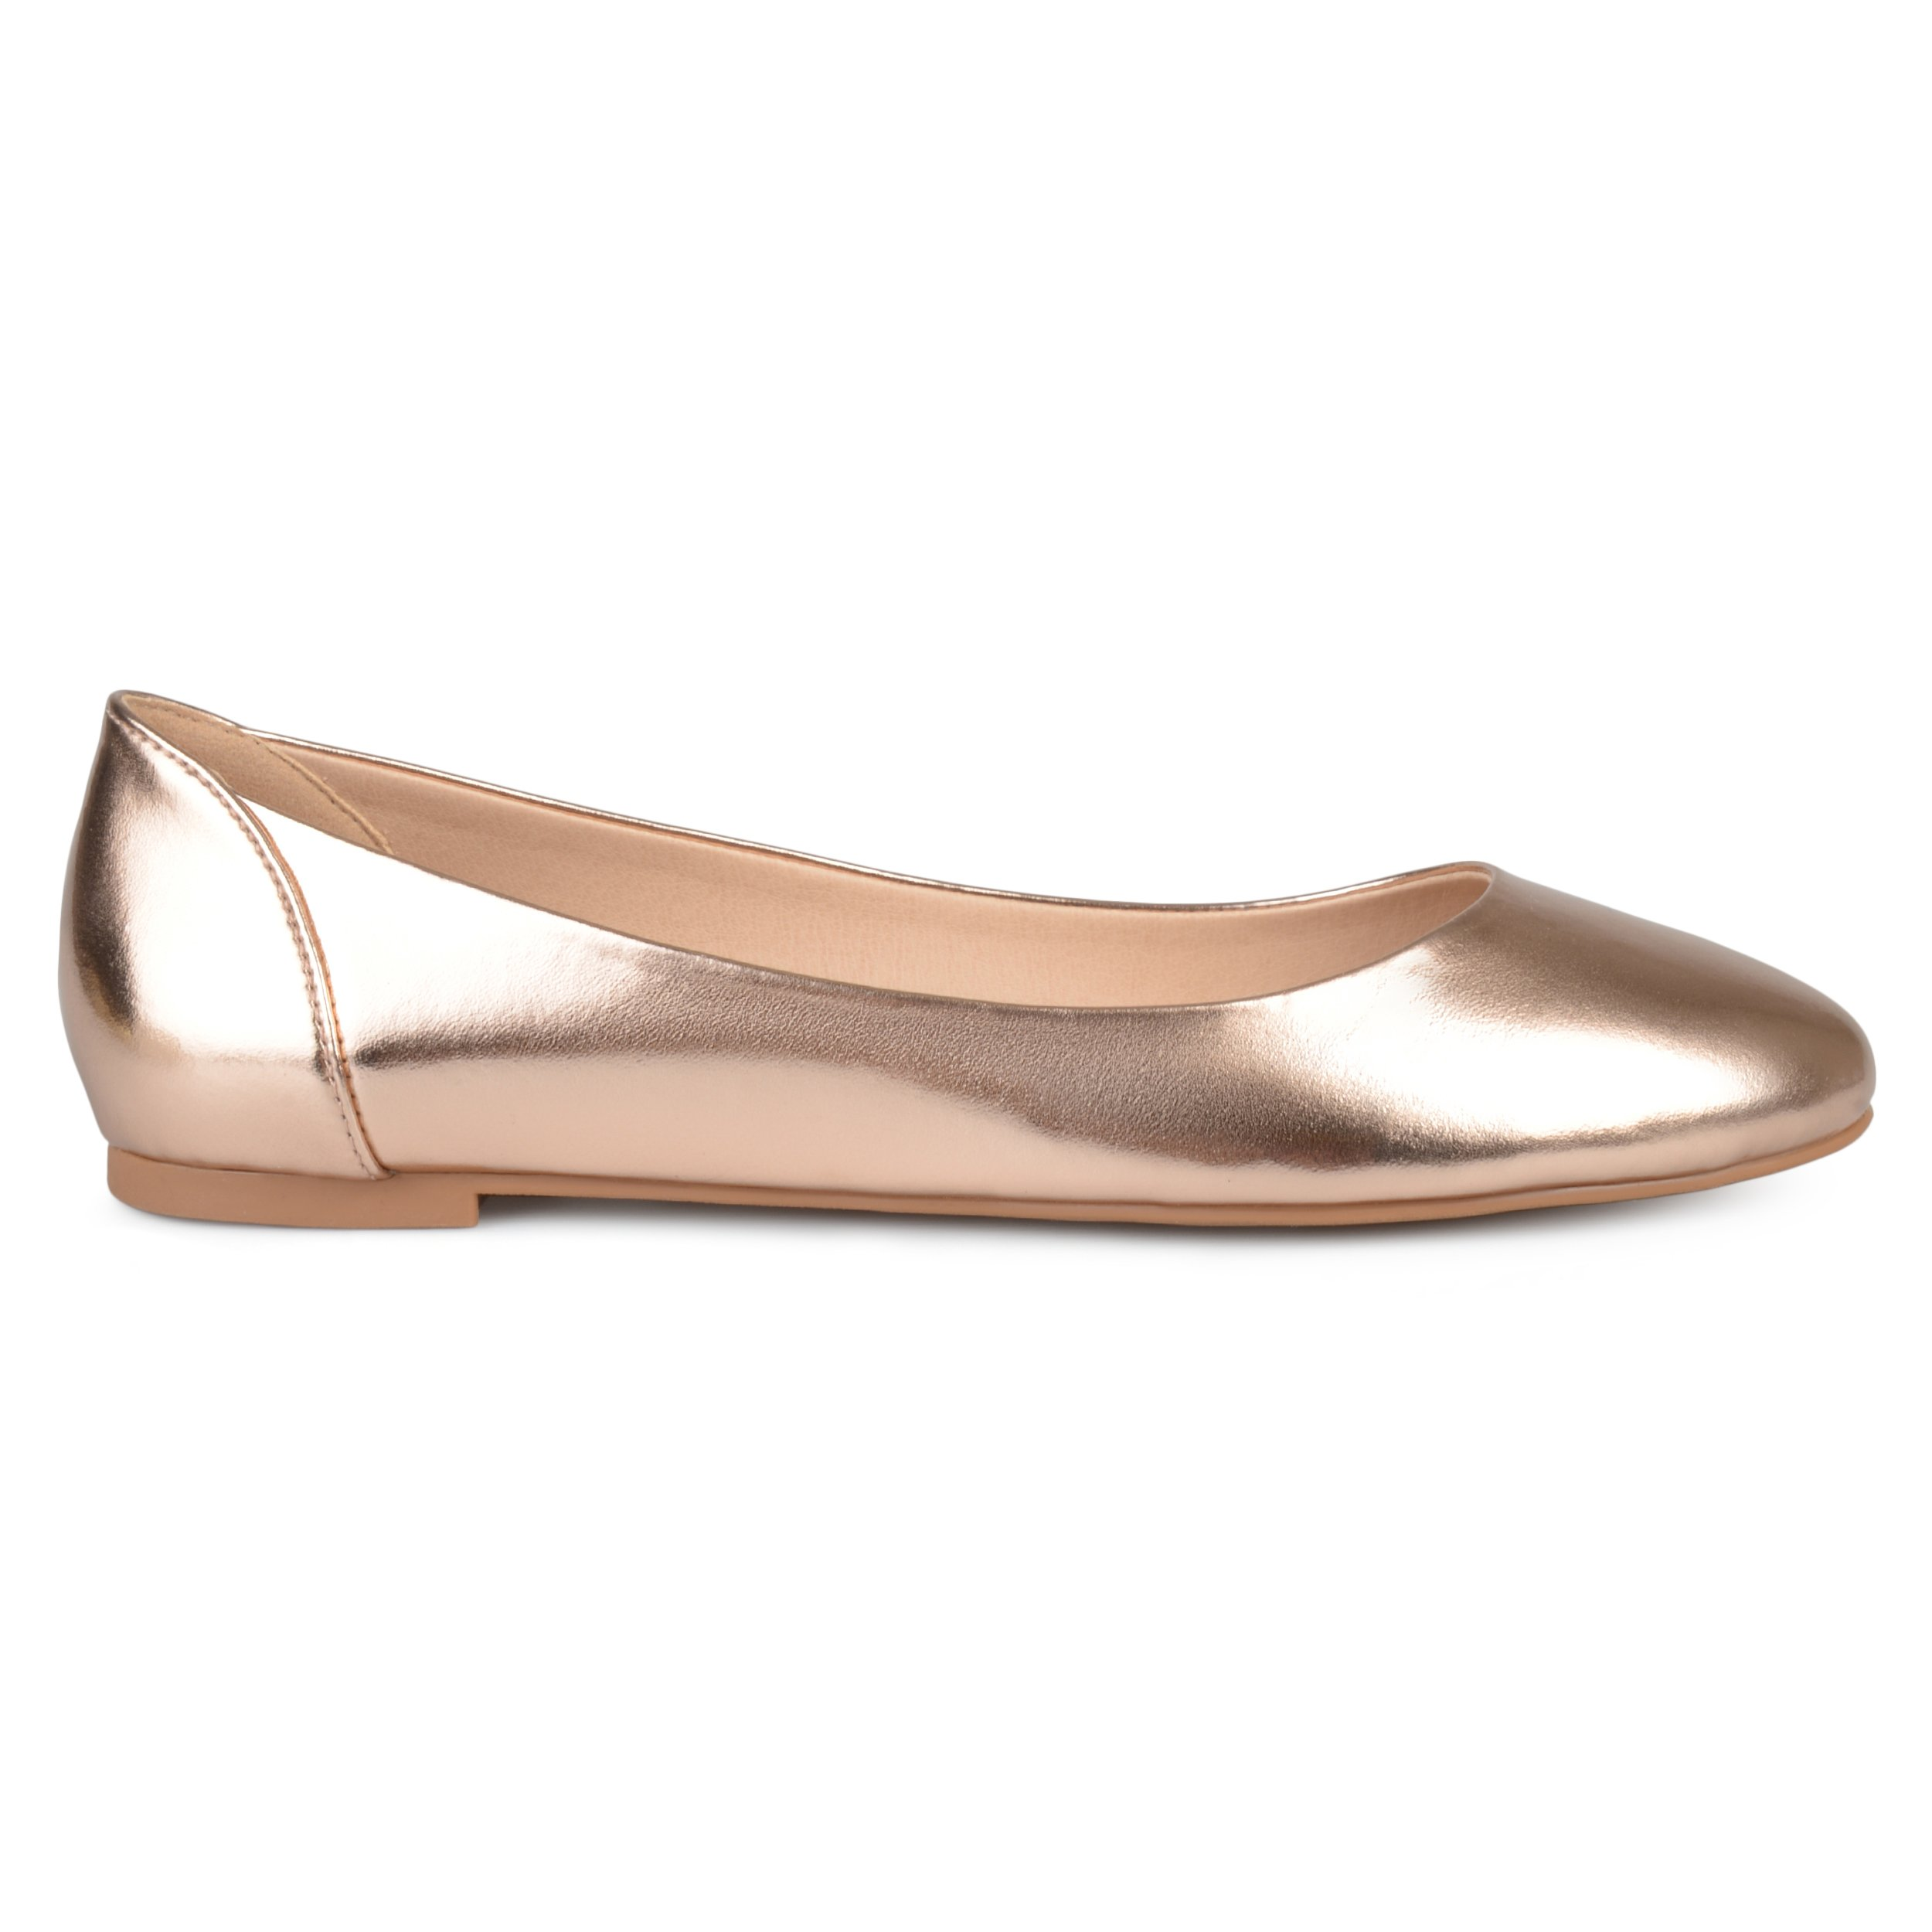 Brinley Co Womens Comfort Sole Faux Leather Round Toe Flats Rose Gold, 7.5 Regular US